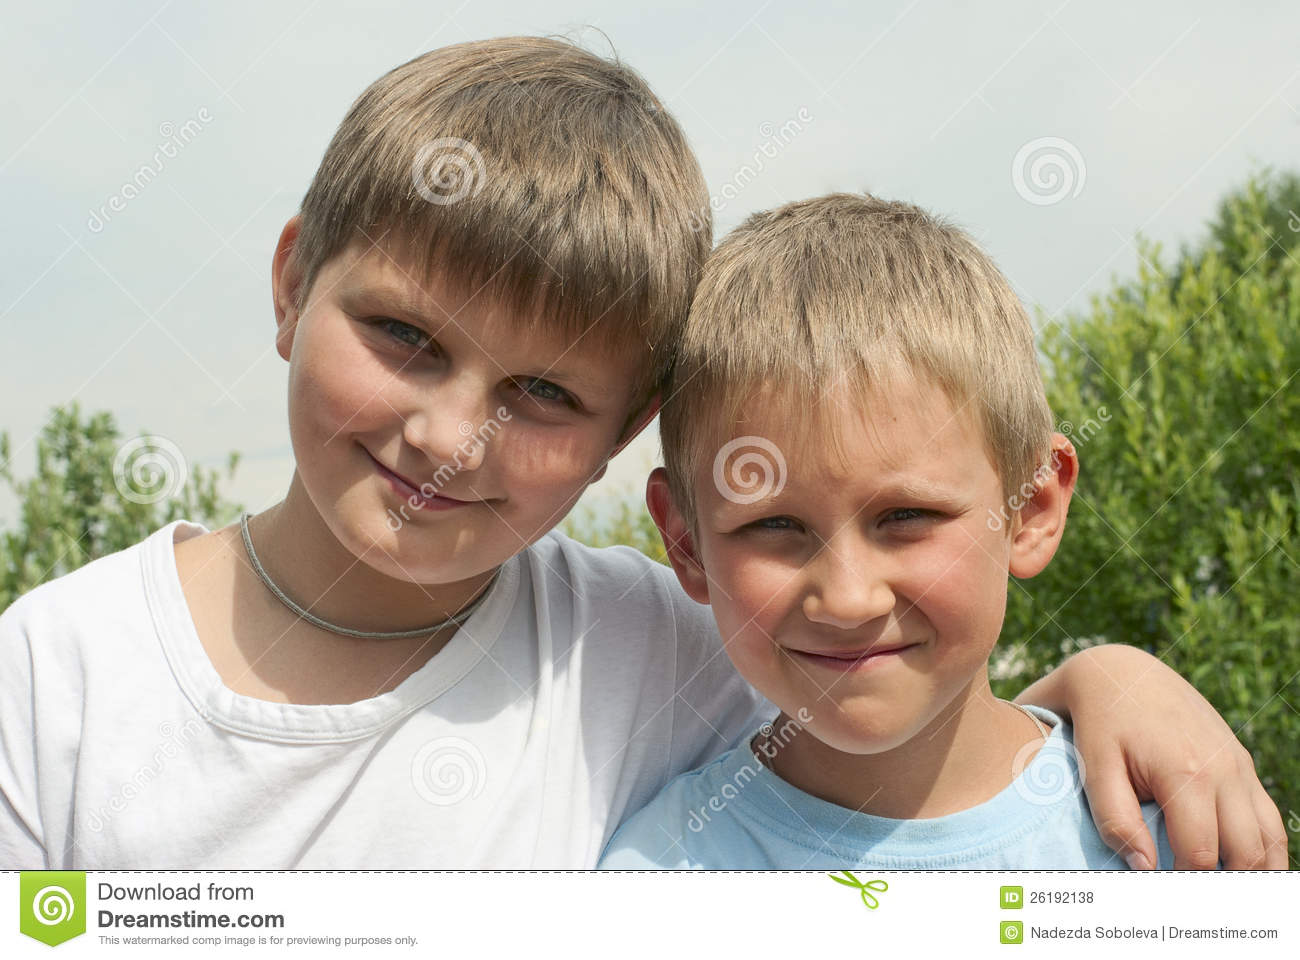 Download Portrait Of Two Boys (6 And 10 Years) Stock Photo - Image of joyful, modern: 26192138